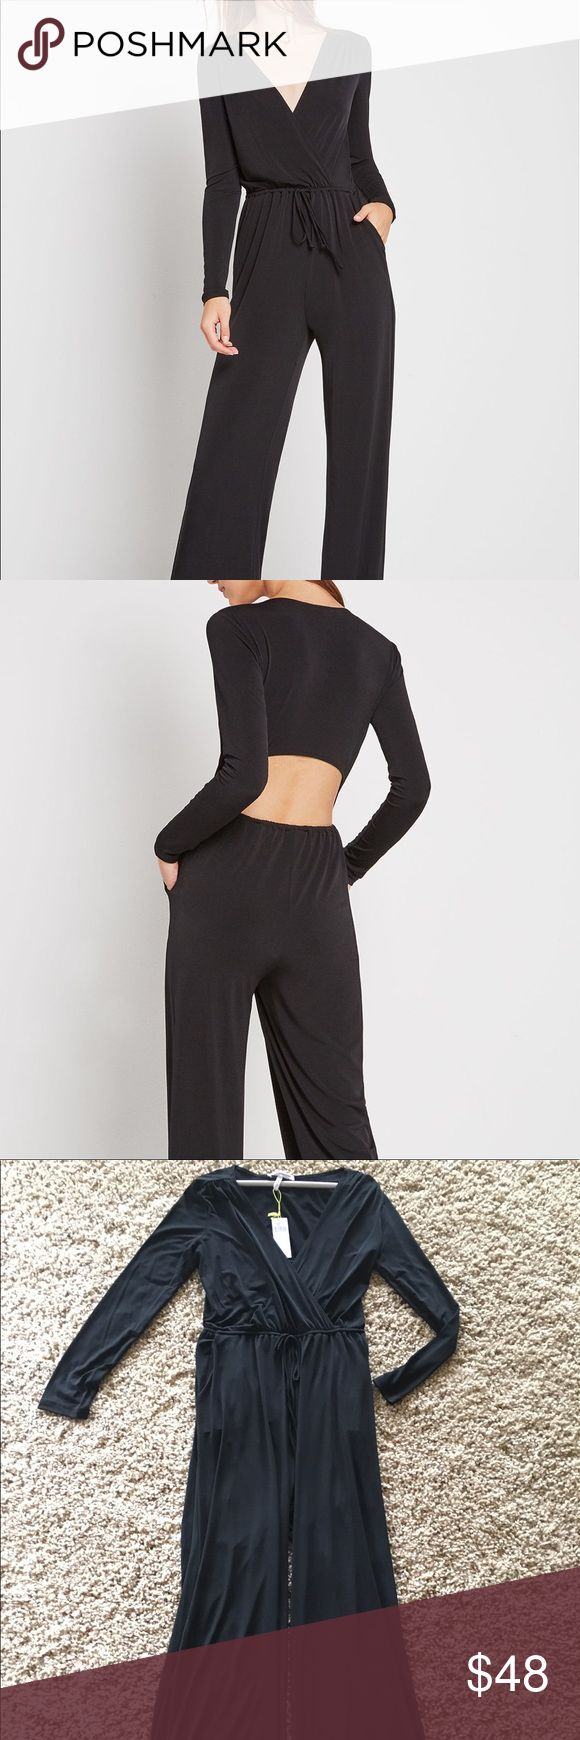 BCBP Surplice Jumpsuit This jumpsuit has never been worn. It's black, long sleeved and VERY comfortable. BCBGeneration Other